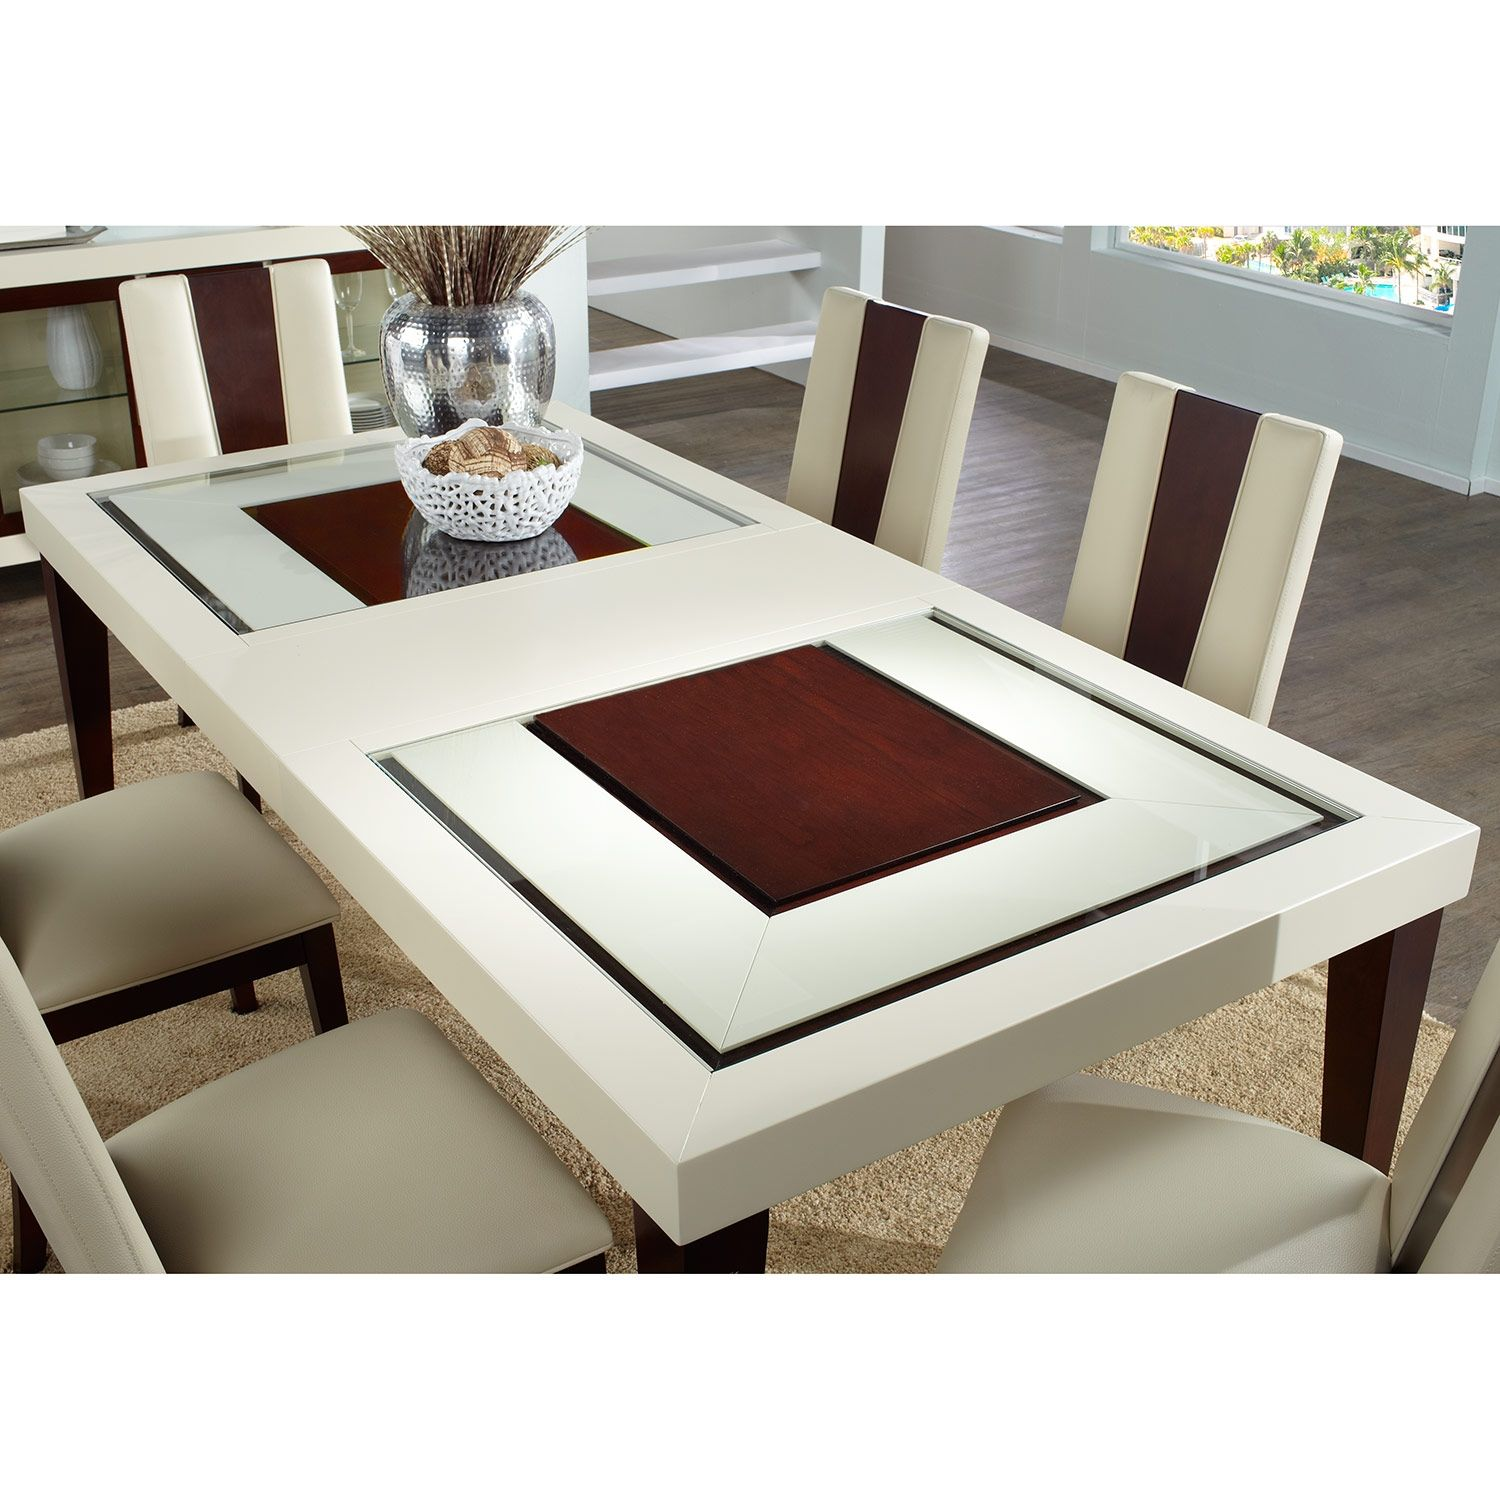 Zeno Dining Table The Brick Rectangle Dining Table Wooden